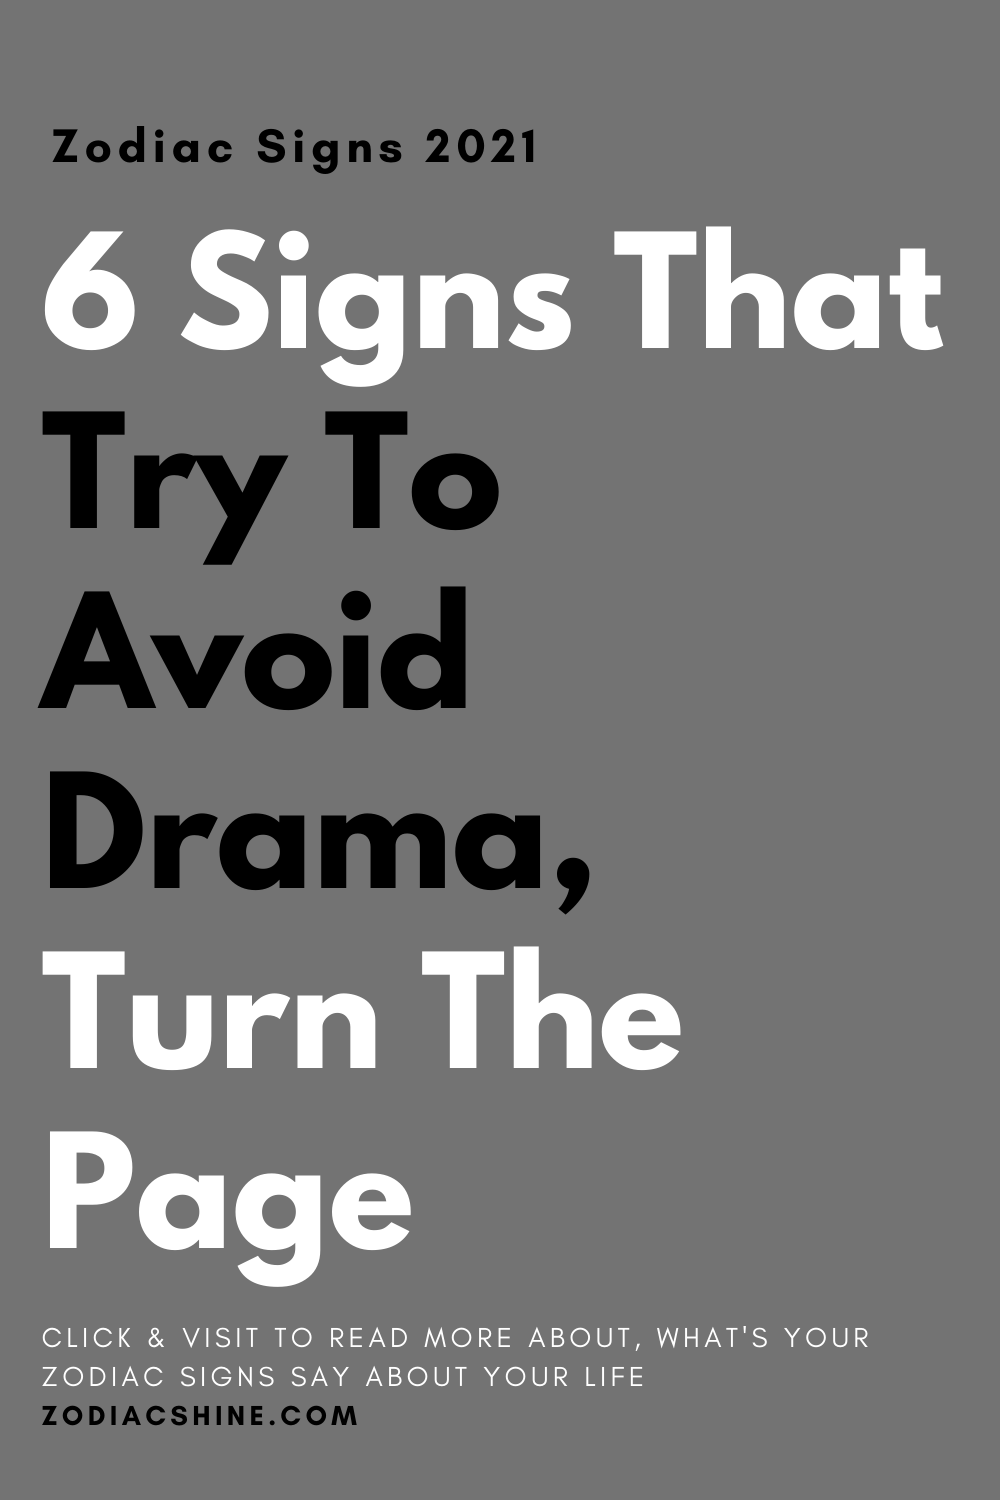 6 Signs That Try To Avoid Drama, Turn The Page